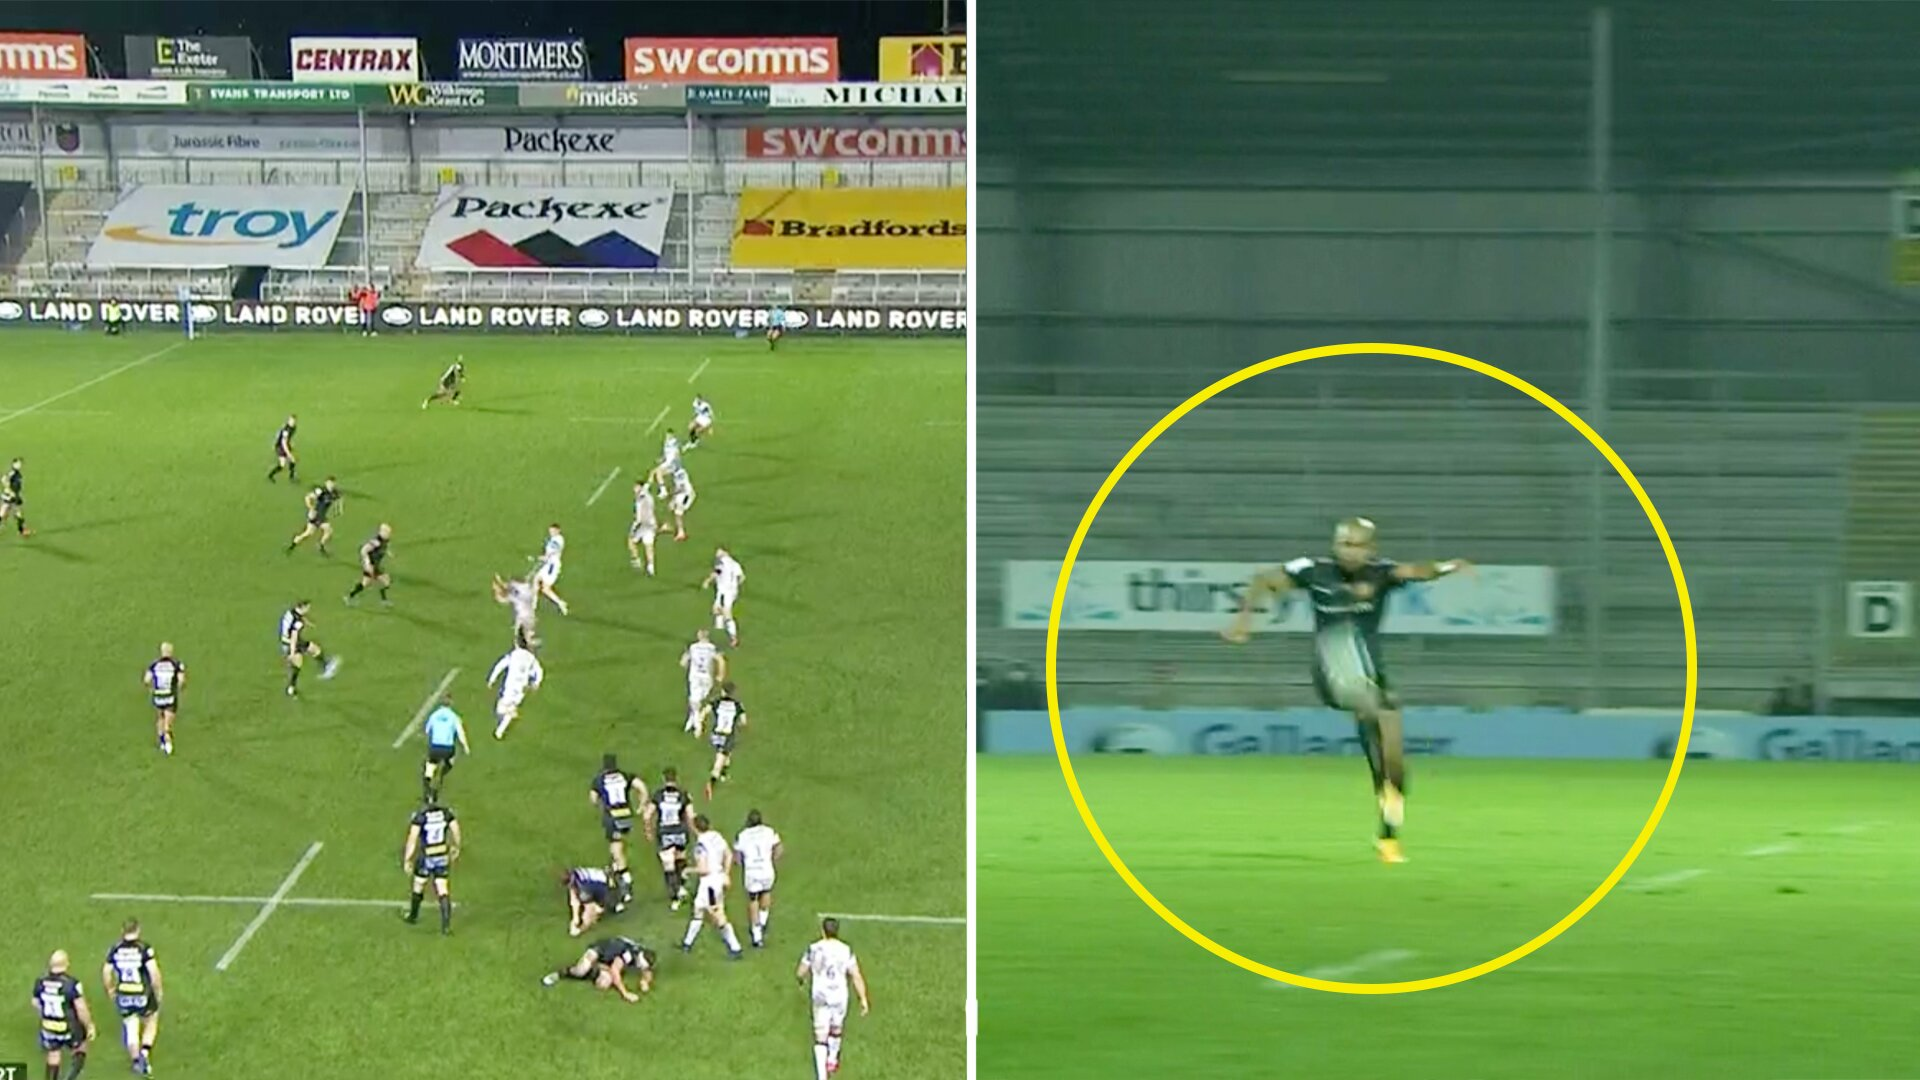 Exeter Chiefs winger Tom O'Flaherty scores unbelievable physics-defying try in today's Gallagher Premiership clash